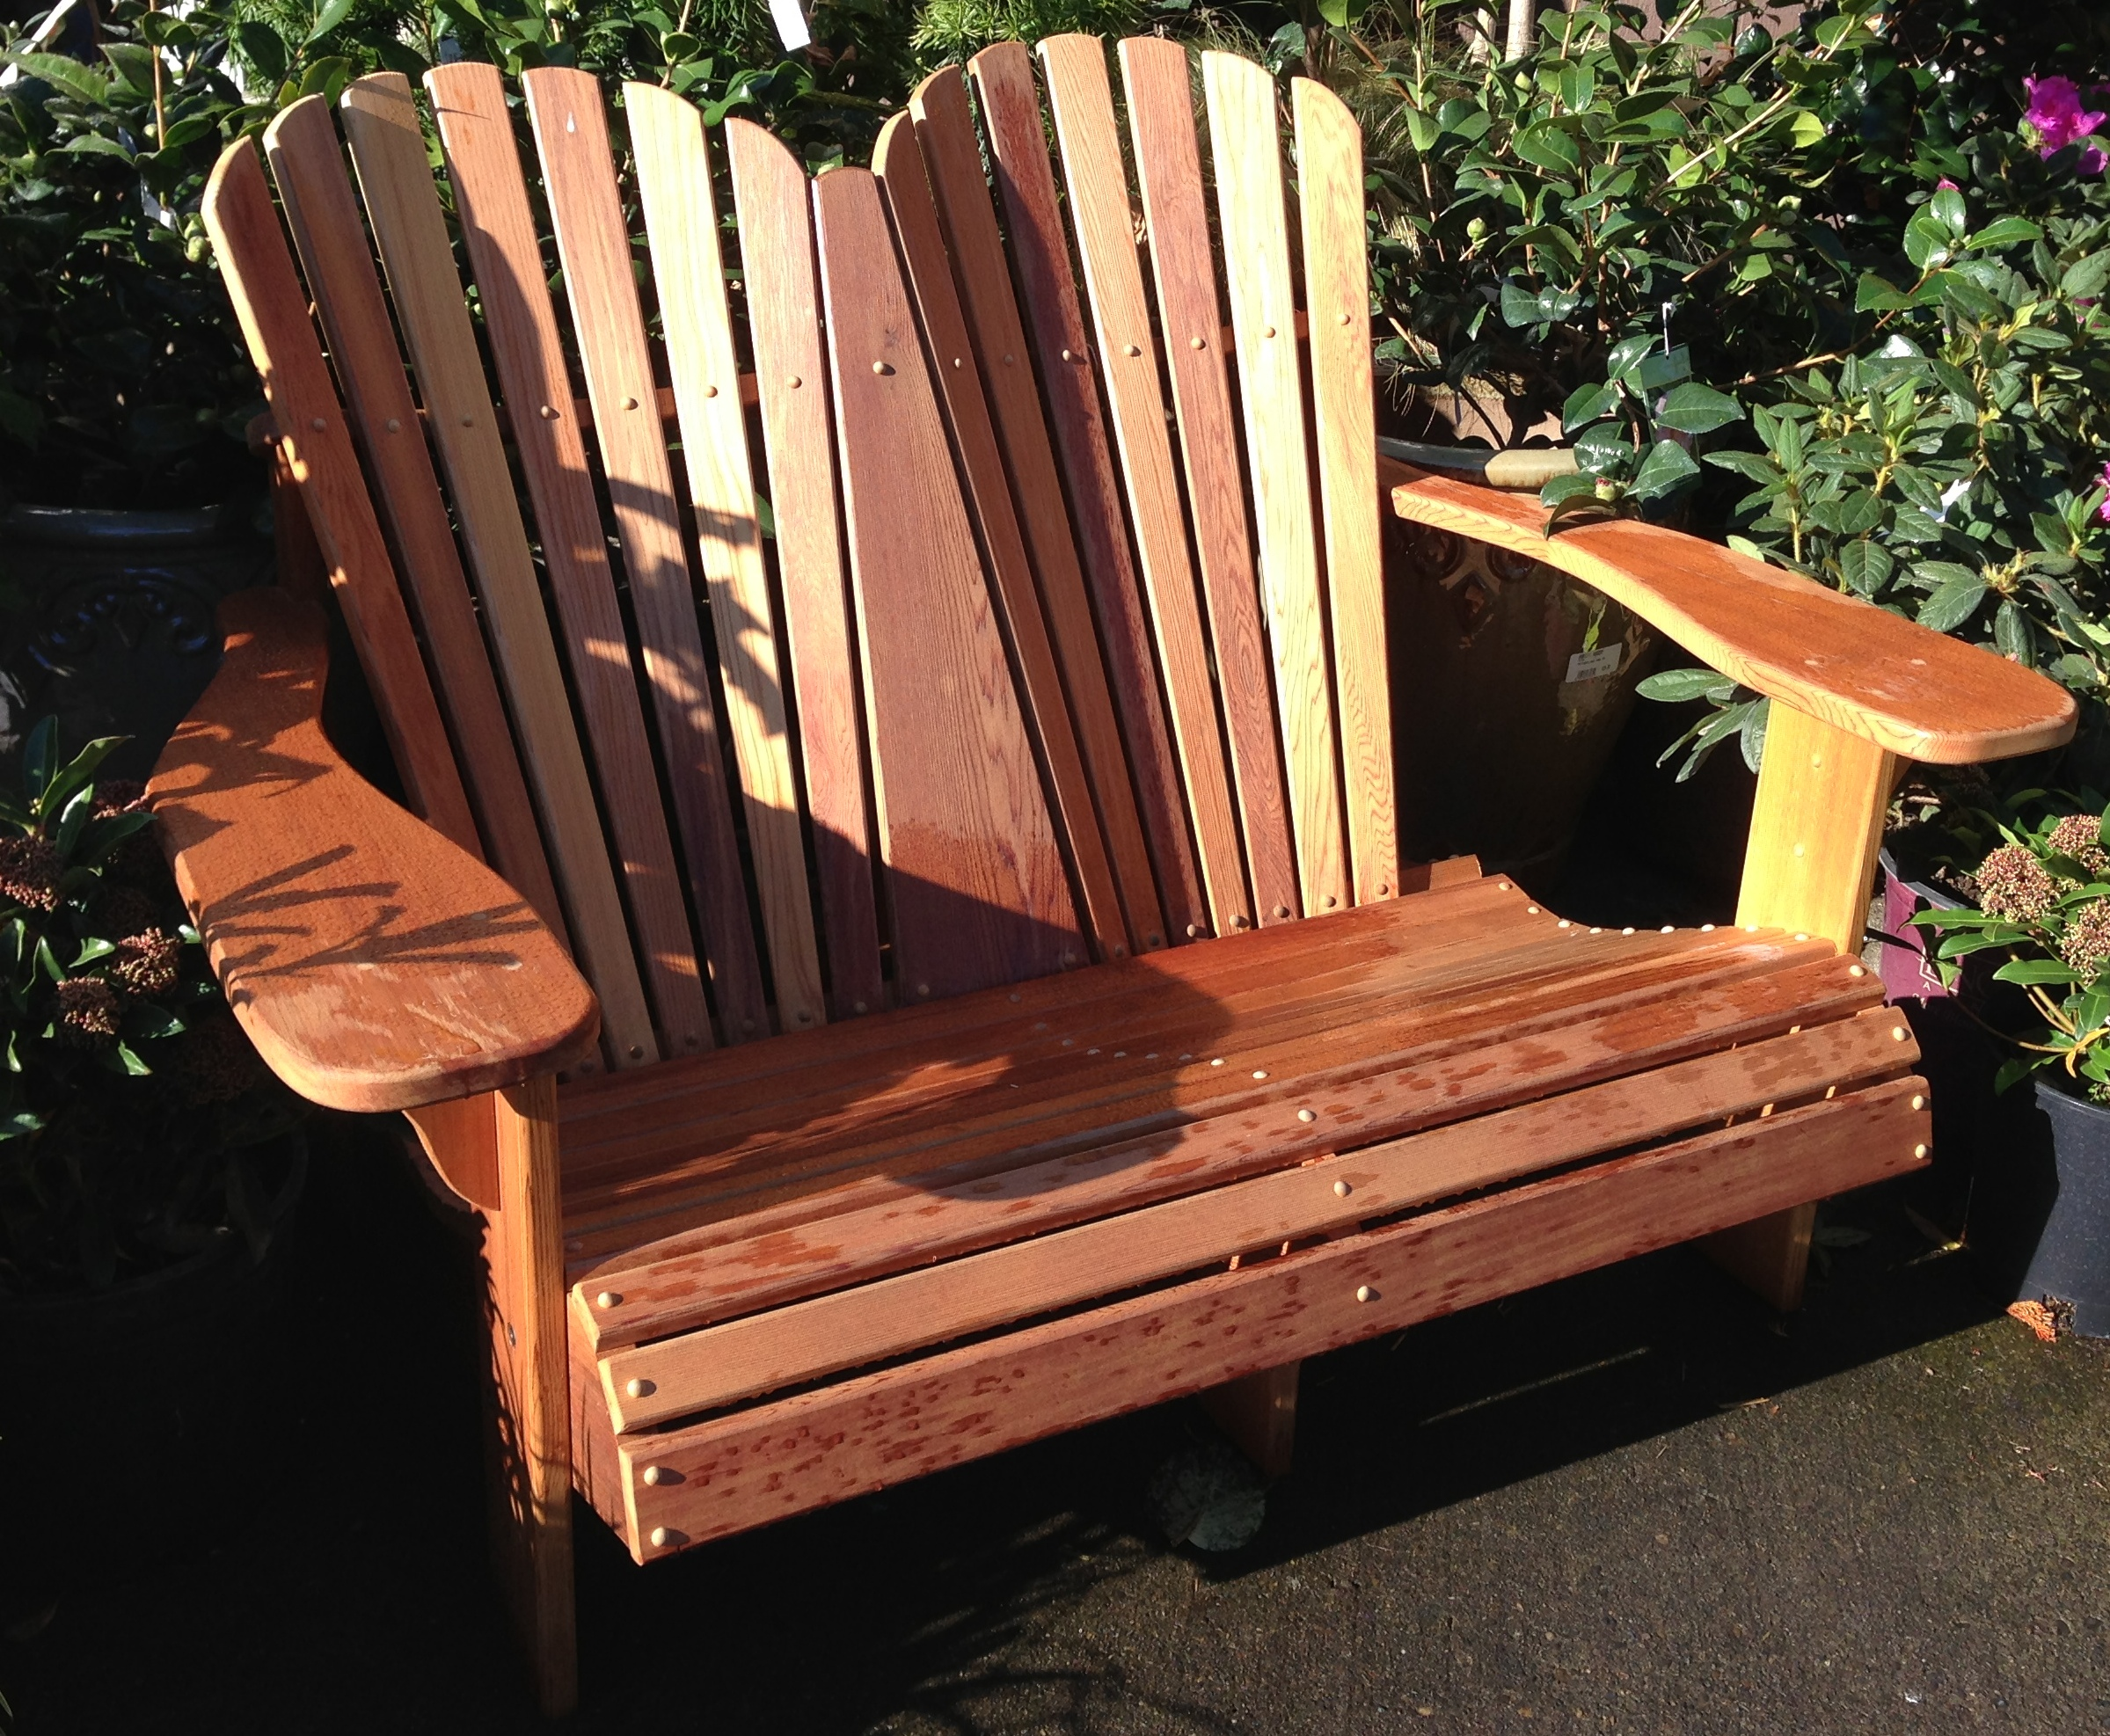 How To Care For Teak Adirondack Chairs Teak Adirondack Chair Care Teak Adirondack Chair Central